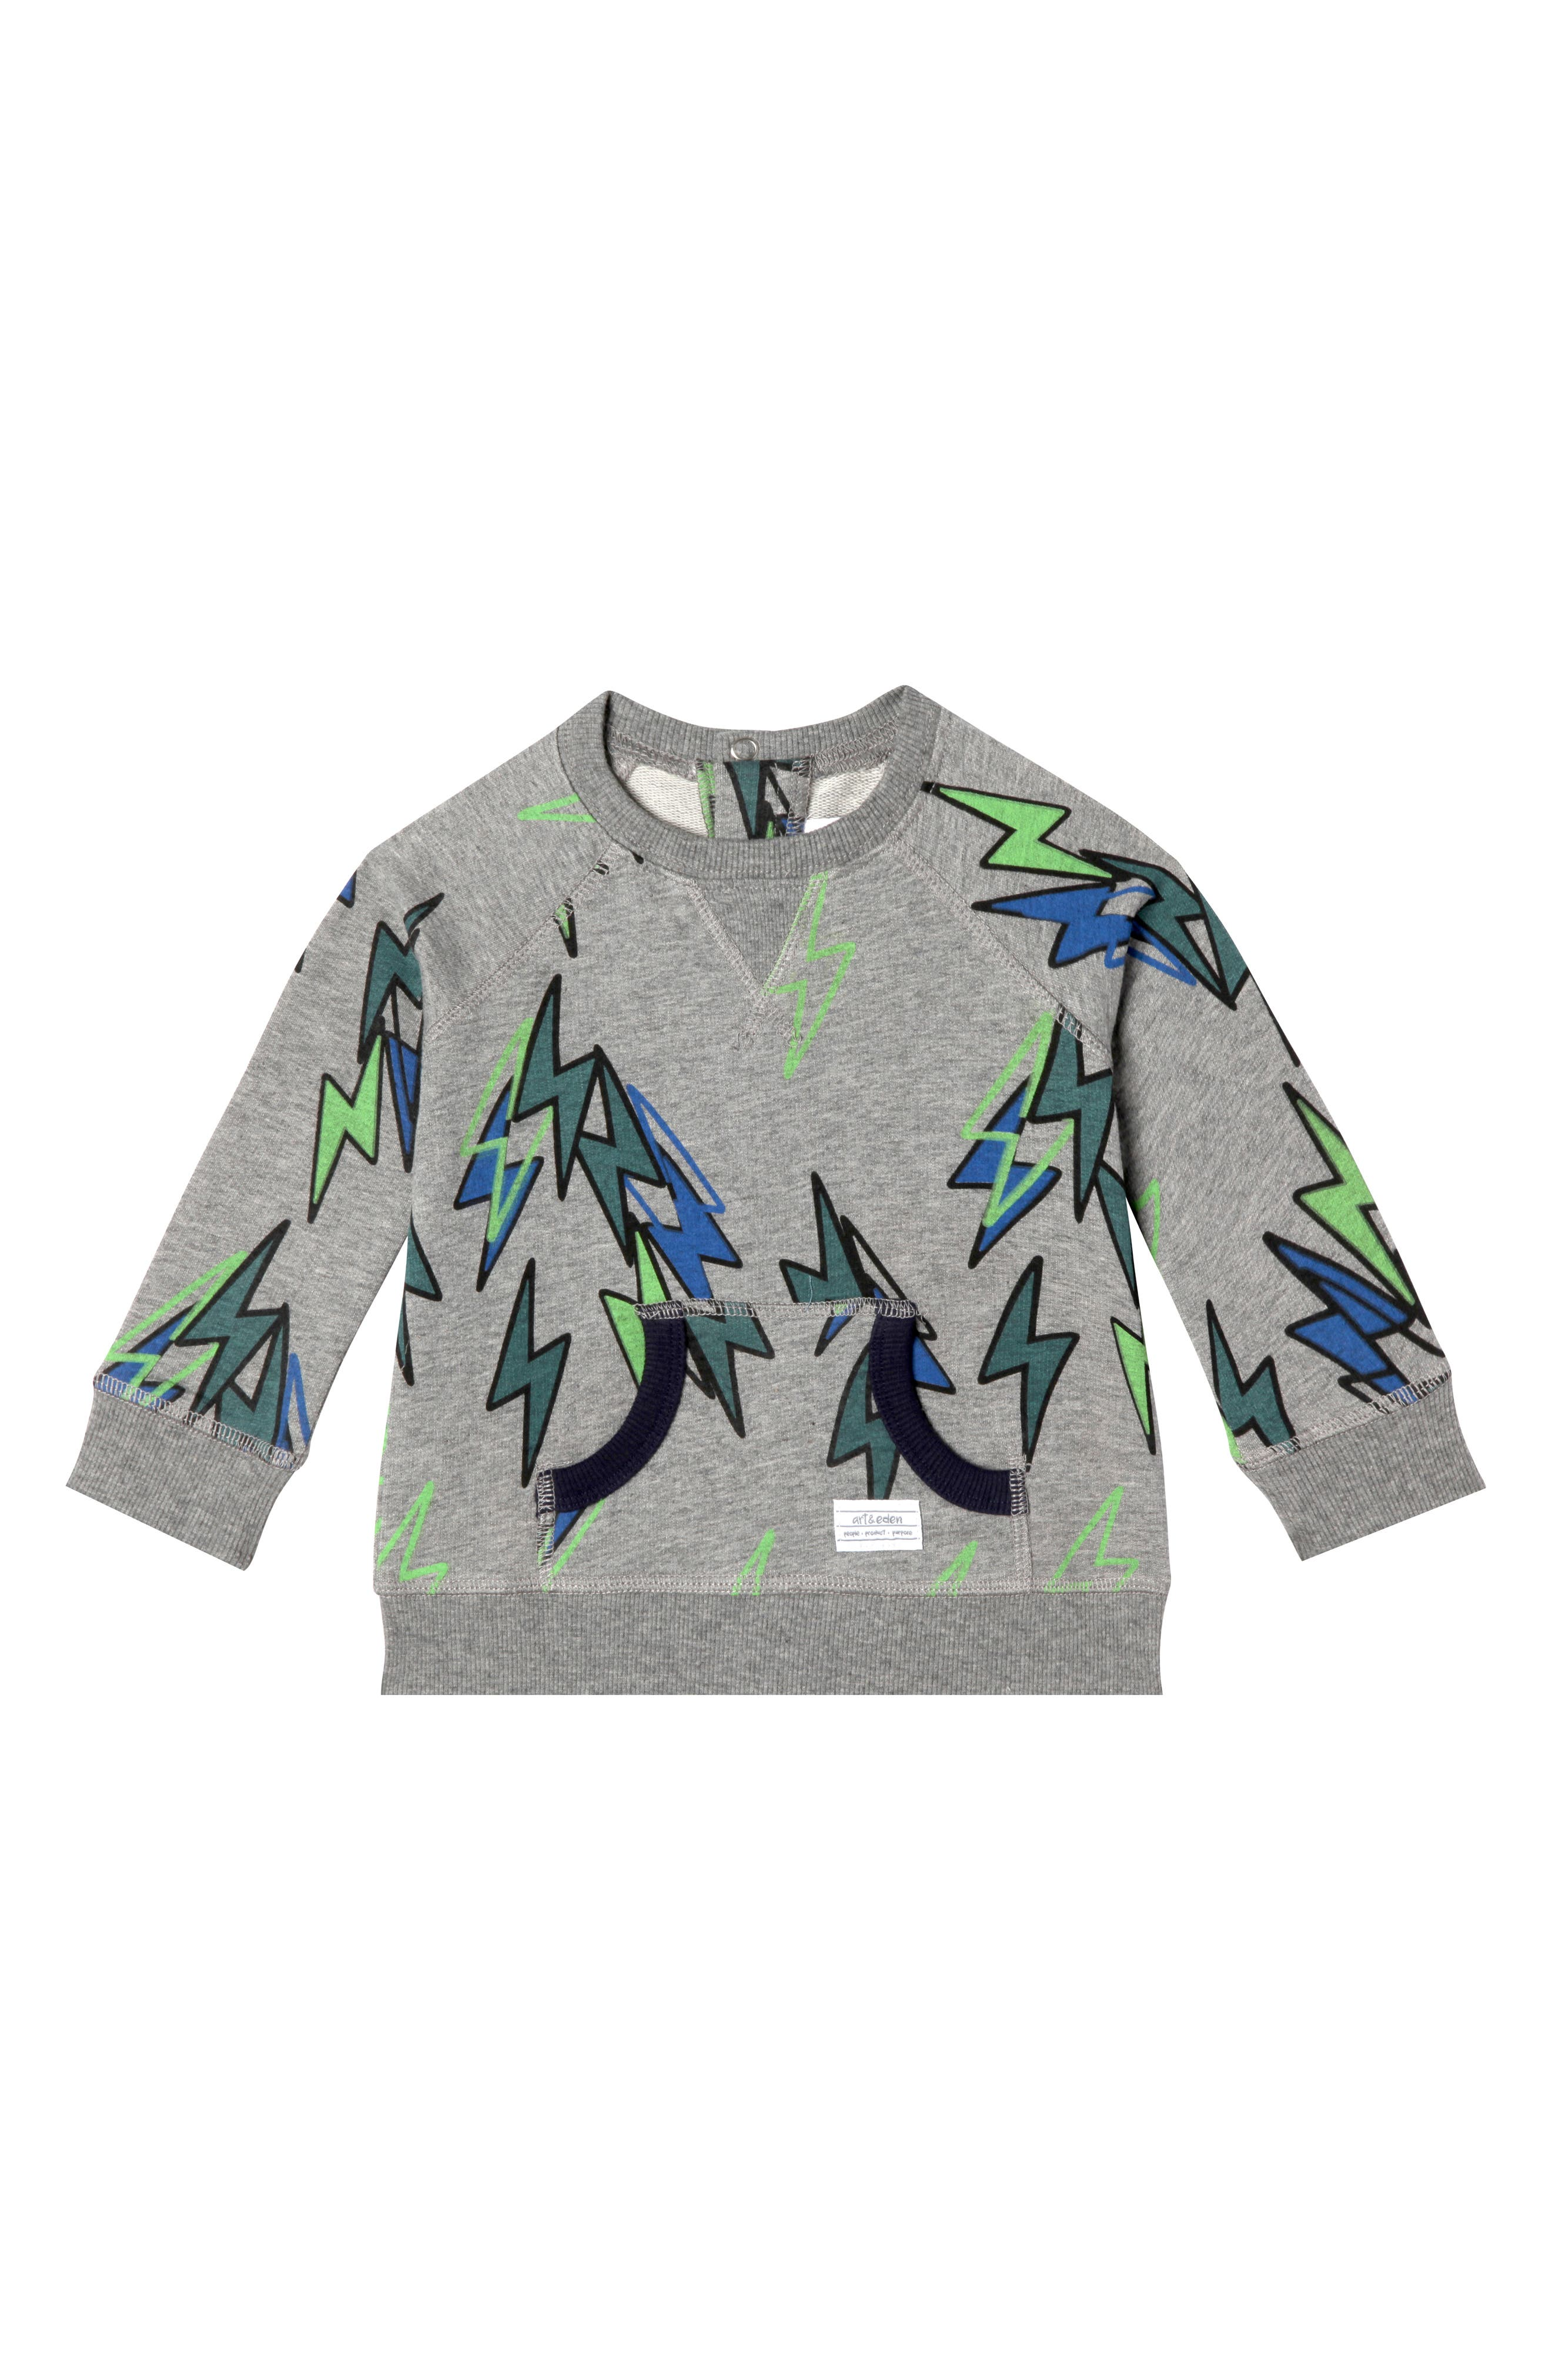 Eli Organic Cotton Sweatshirt,                             Main thumbnail 1, color,                             LIGHTING BOLT